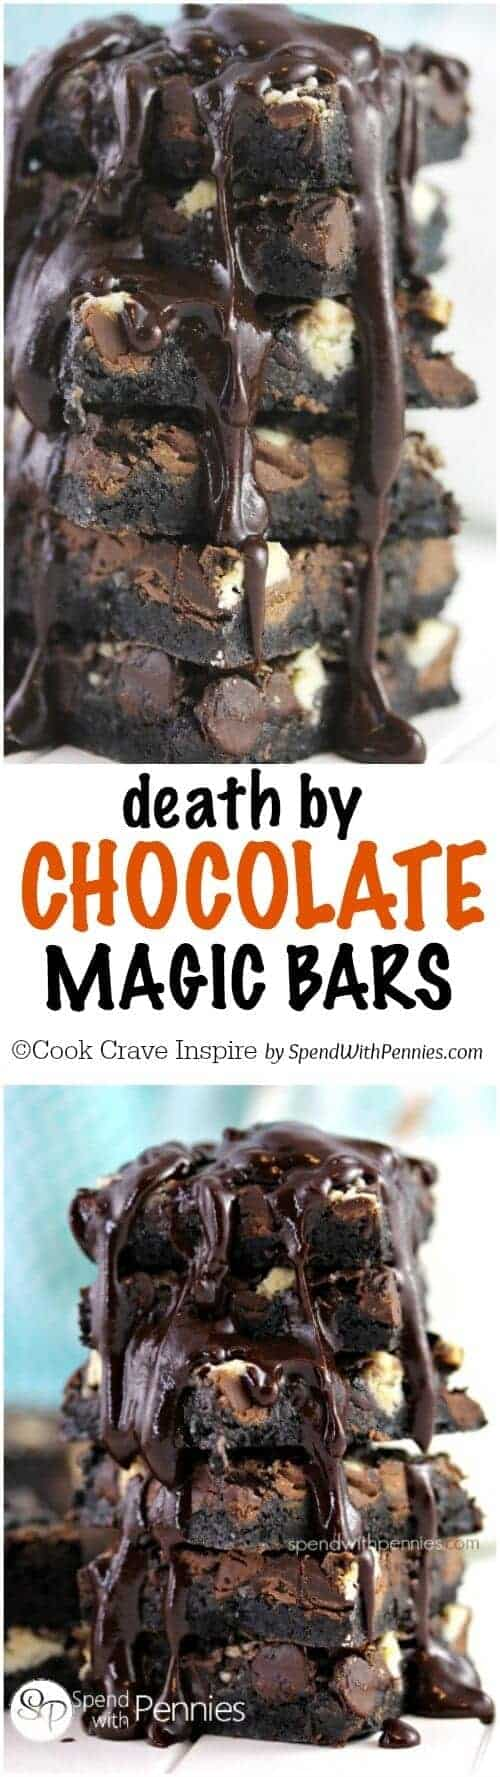 Death by Chocolate Magic Cookie Bars - Spend With Pennies